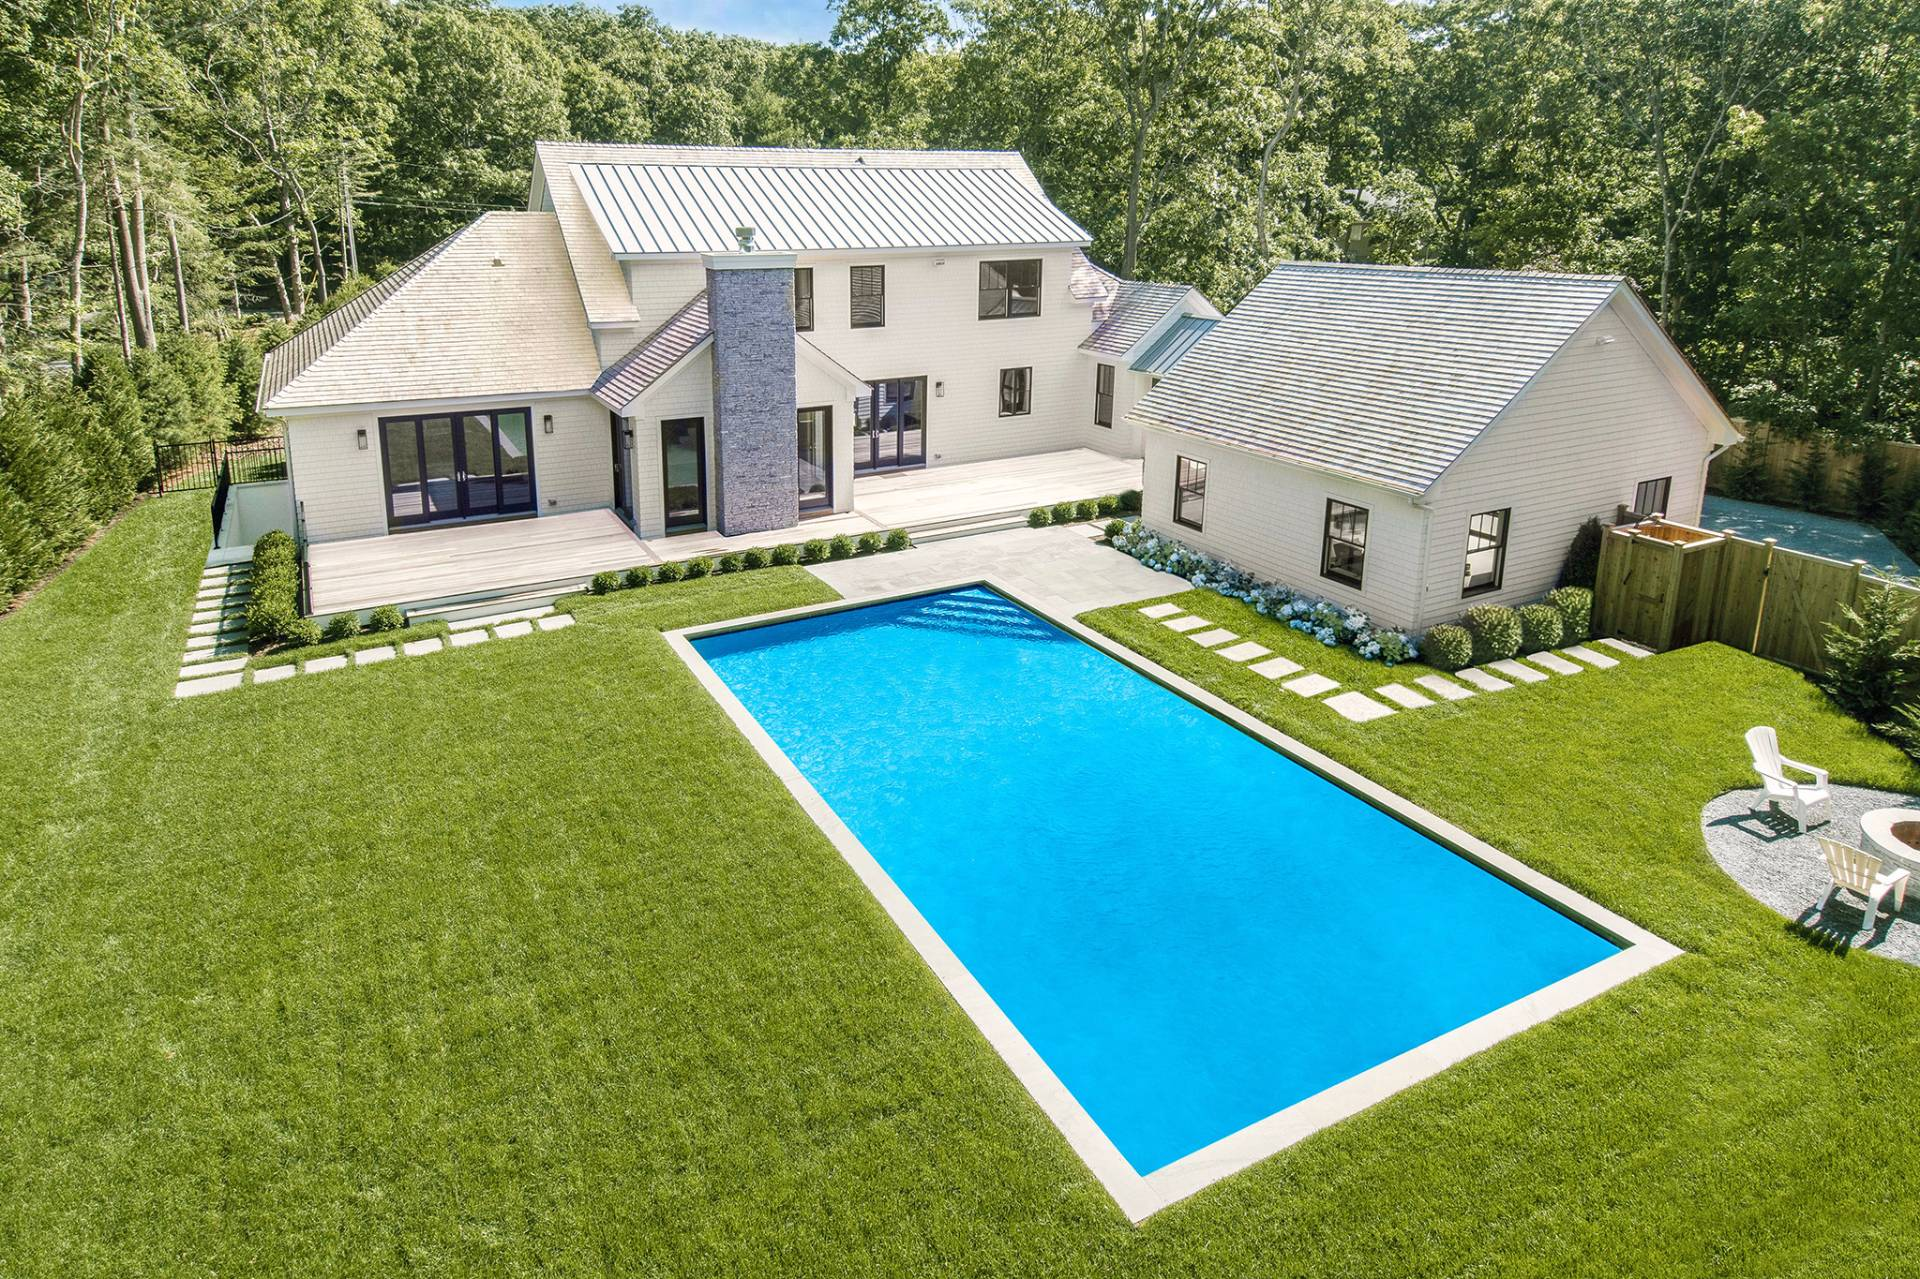 Single Family Home for Sale at Luxury New Construction 9 Cattalo Circle, East Hampton, New York